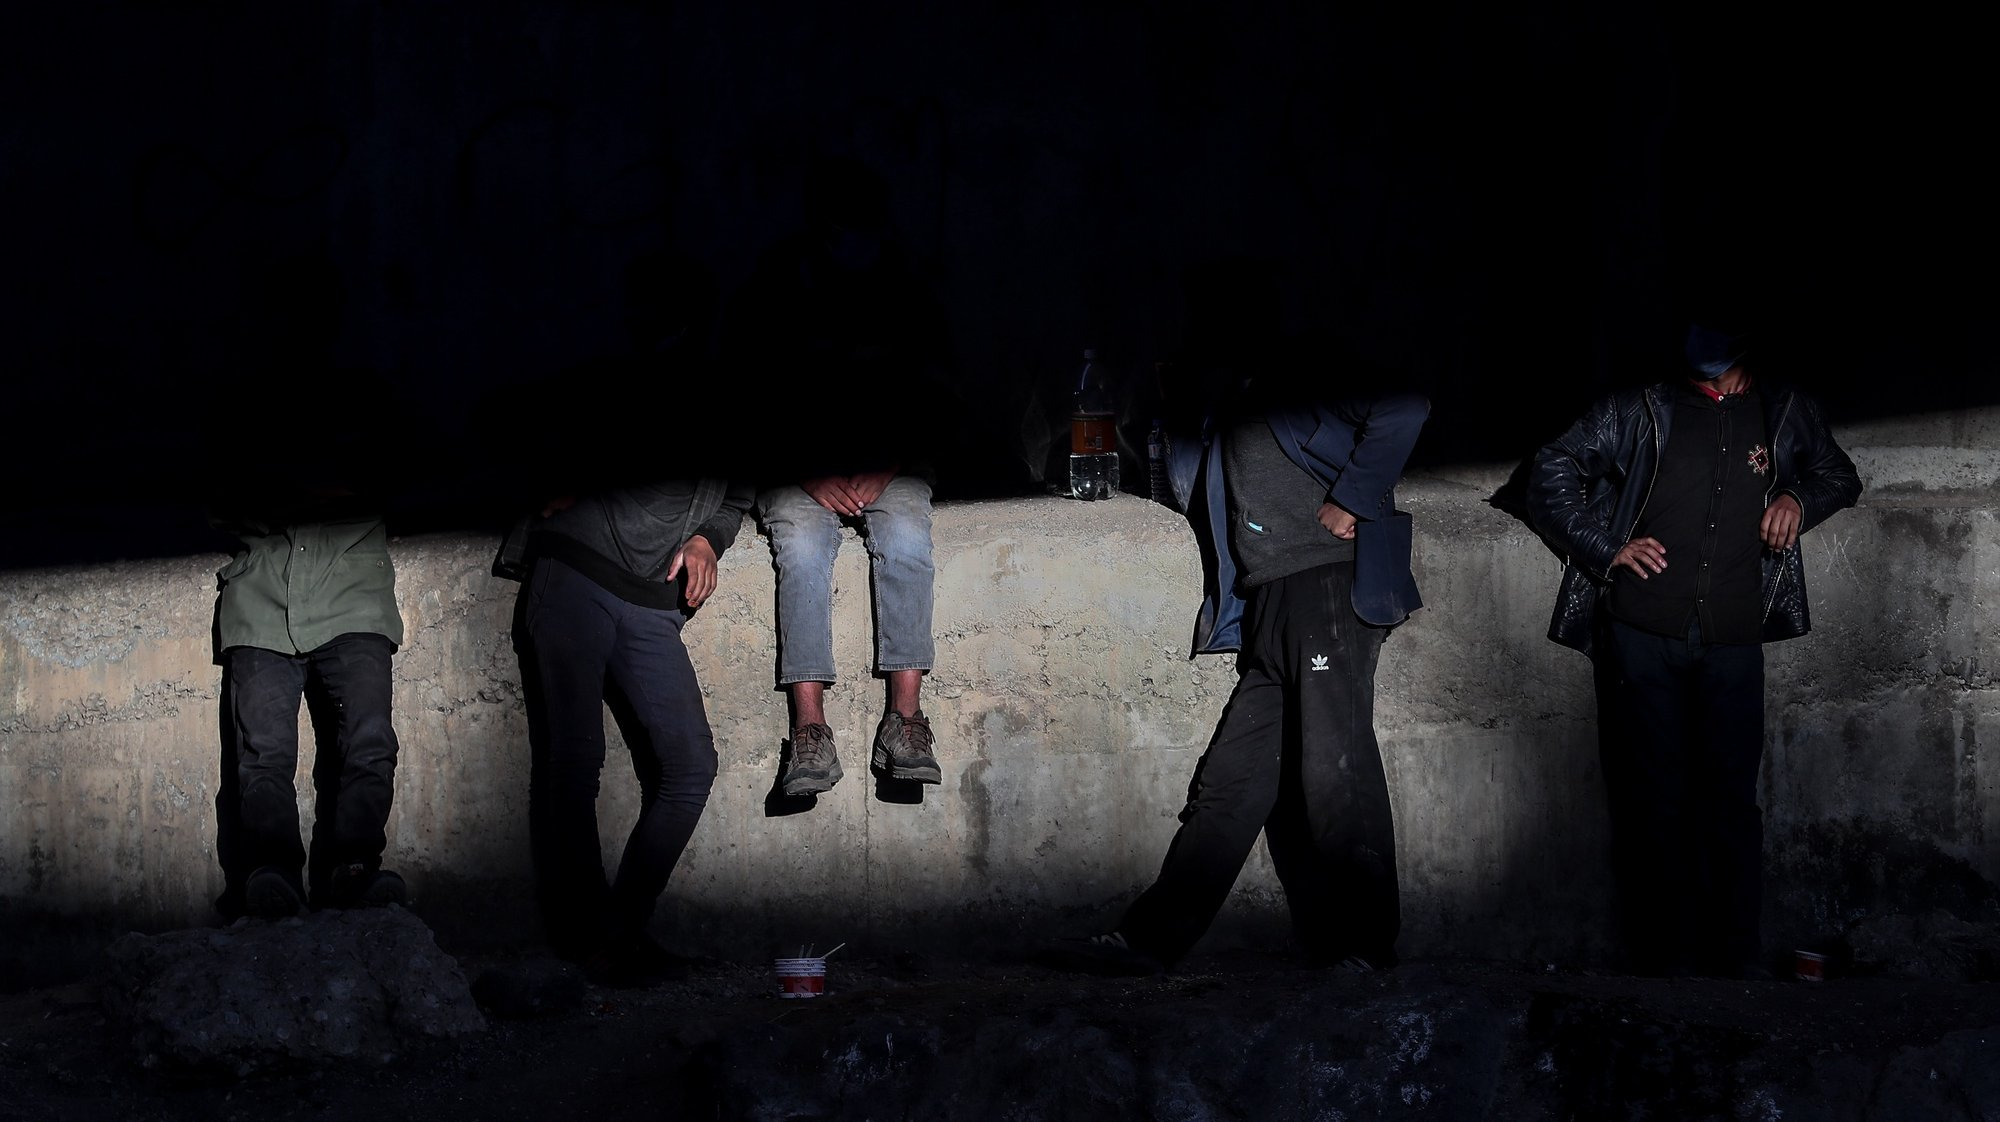 epaselect epa09323135 (28/33) A group of people rest under a bridge near a railway in the Turkish city of Van after crossing the Iran-Turkey border, 02 June 2021. People smuggled into the country wait for days to be transferred by smugglers to Diyarbakir city to reach west Turkey. The city of Van, on the Turkish-Iranian border, is one of the points at which human smuggling can be easily spotted. Smugglers charge between 600 or 1,000 US dollars per person, depending on the security situation at the border.  EPA/SEDAT SUNA ATTENTION: For the full PHOTO ESSAY text please see Advisory Notices epa09323103 and epa09323104